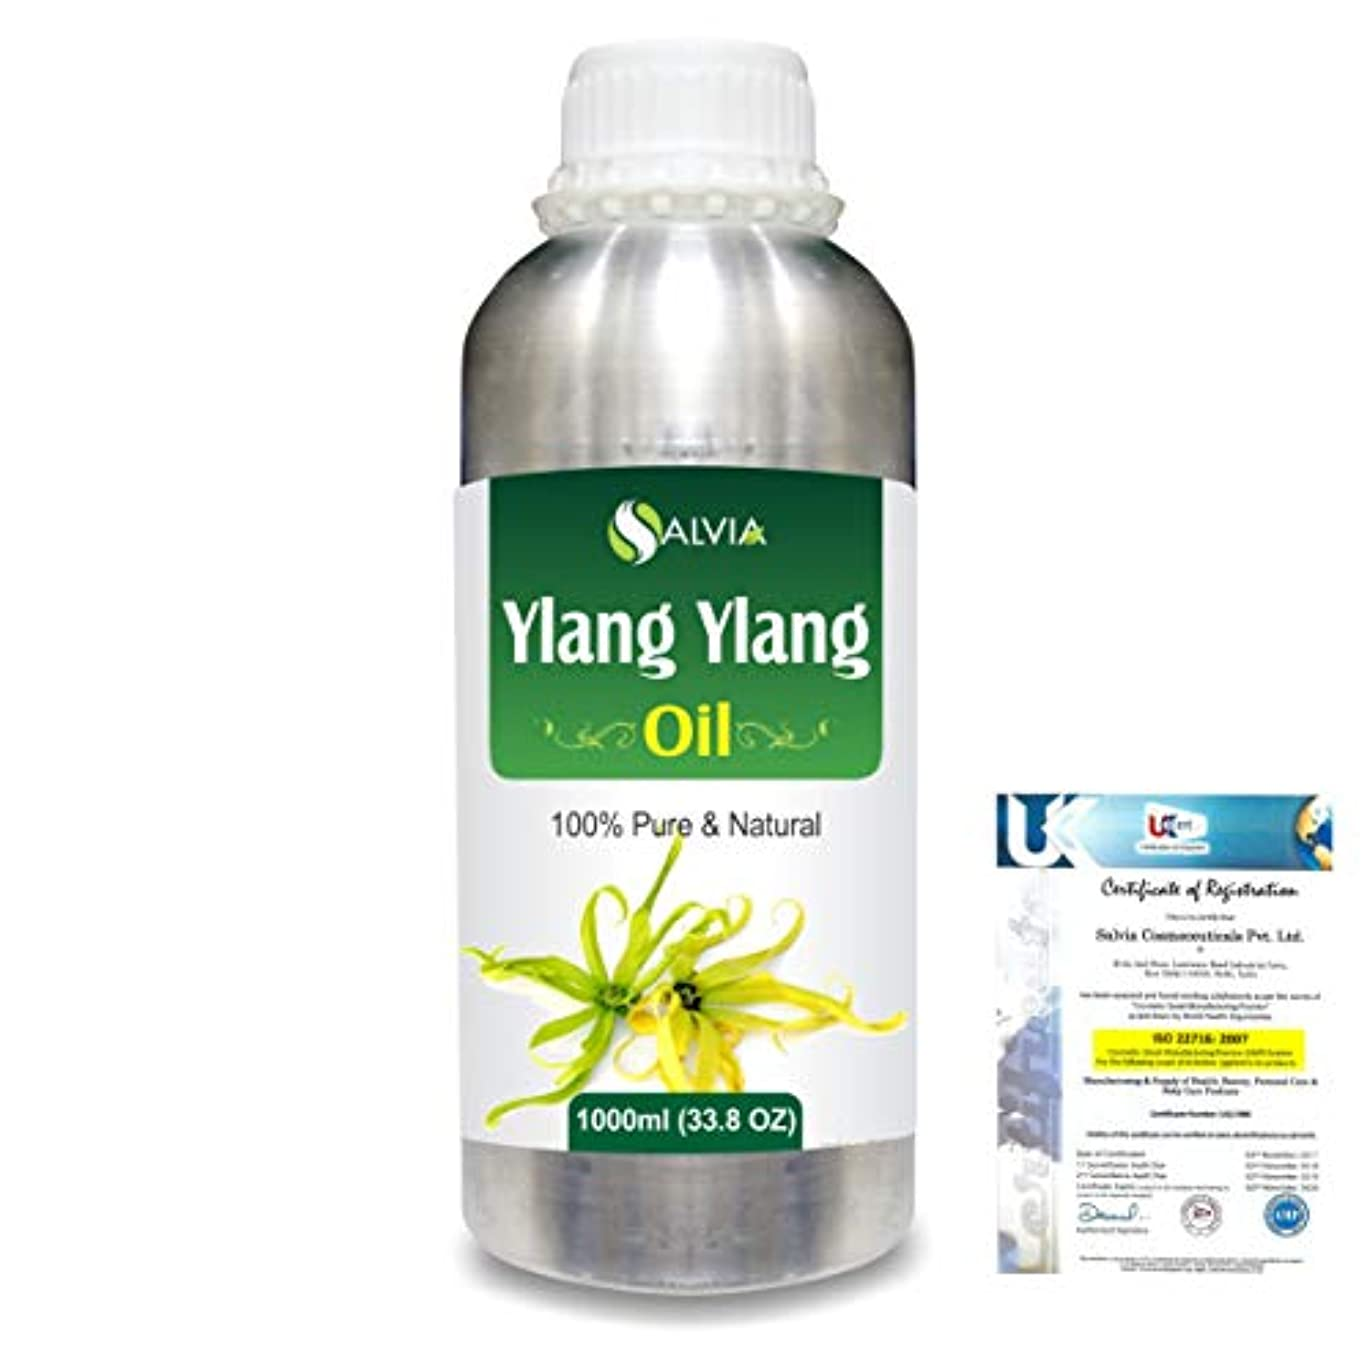 インレイ小屋動機付けるYlang Ylang (Cananga Odorata) 100% Natural Pure Essential Oil 1000ml/33.8fl.oz.